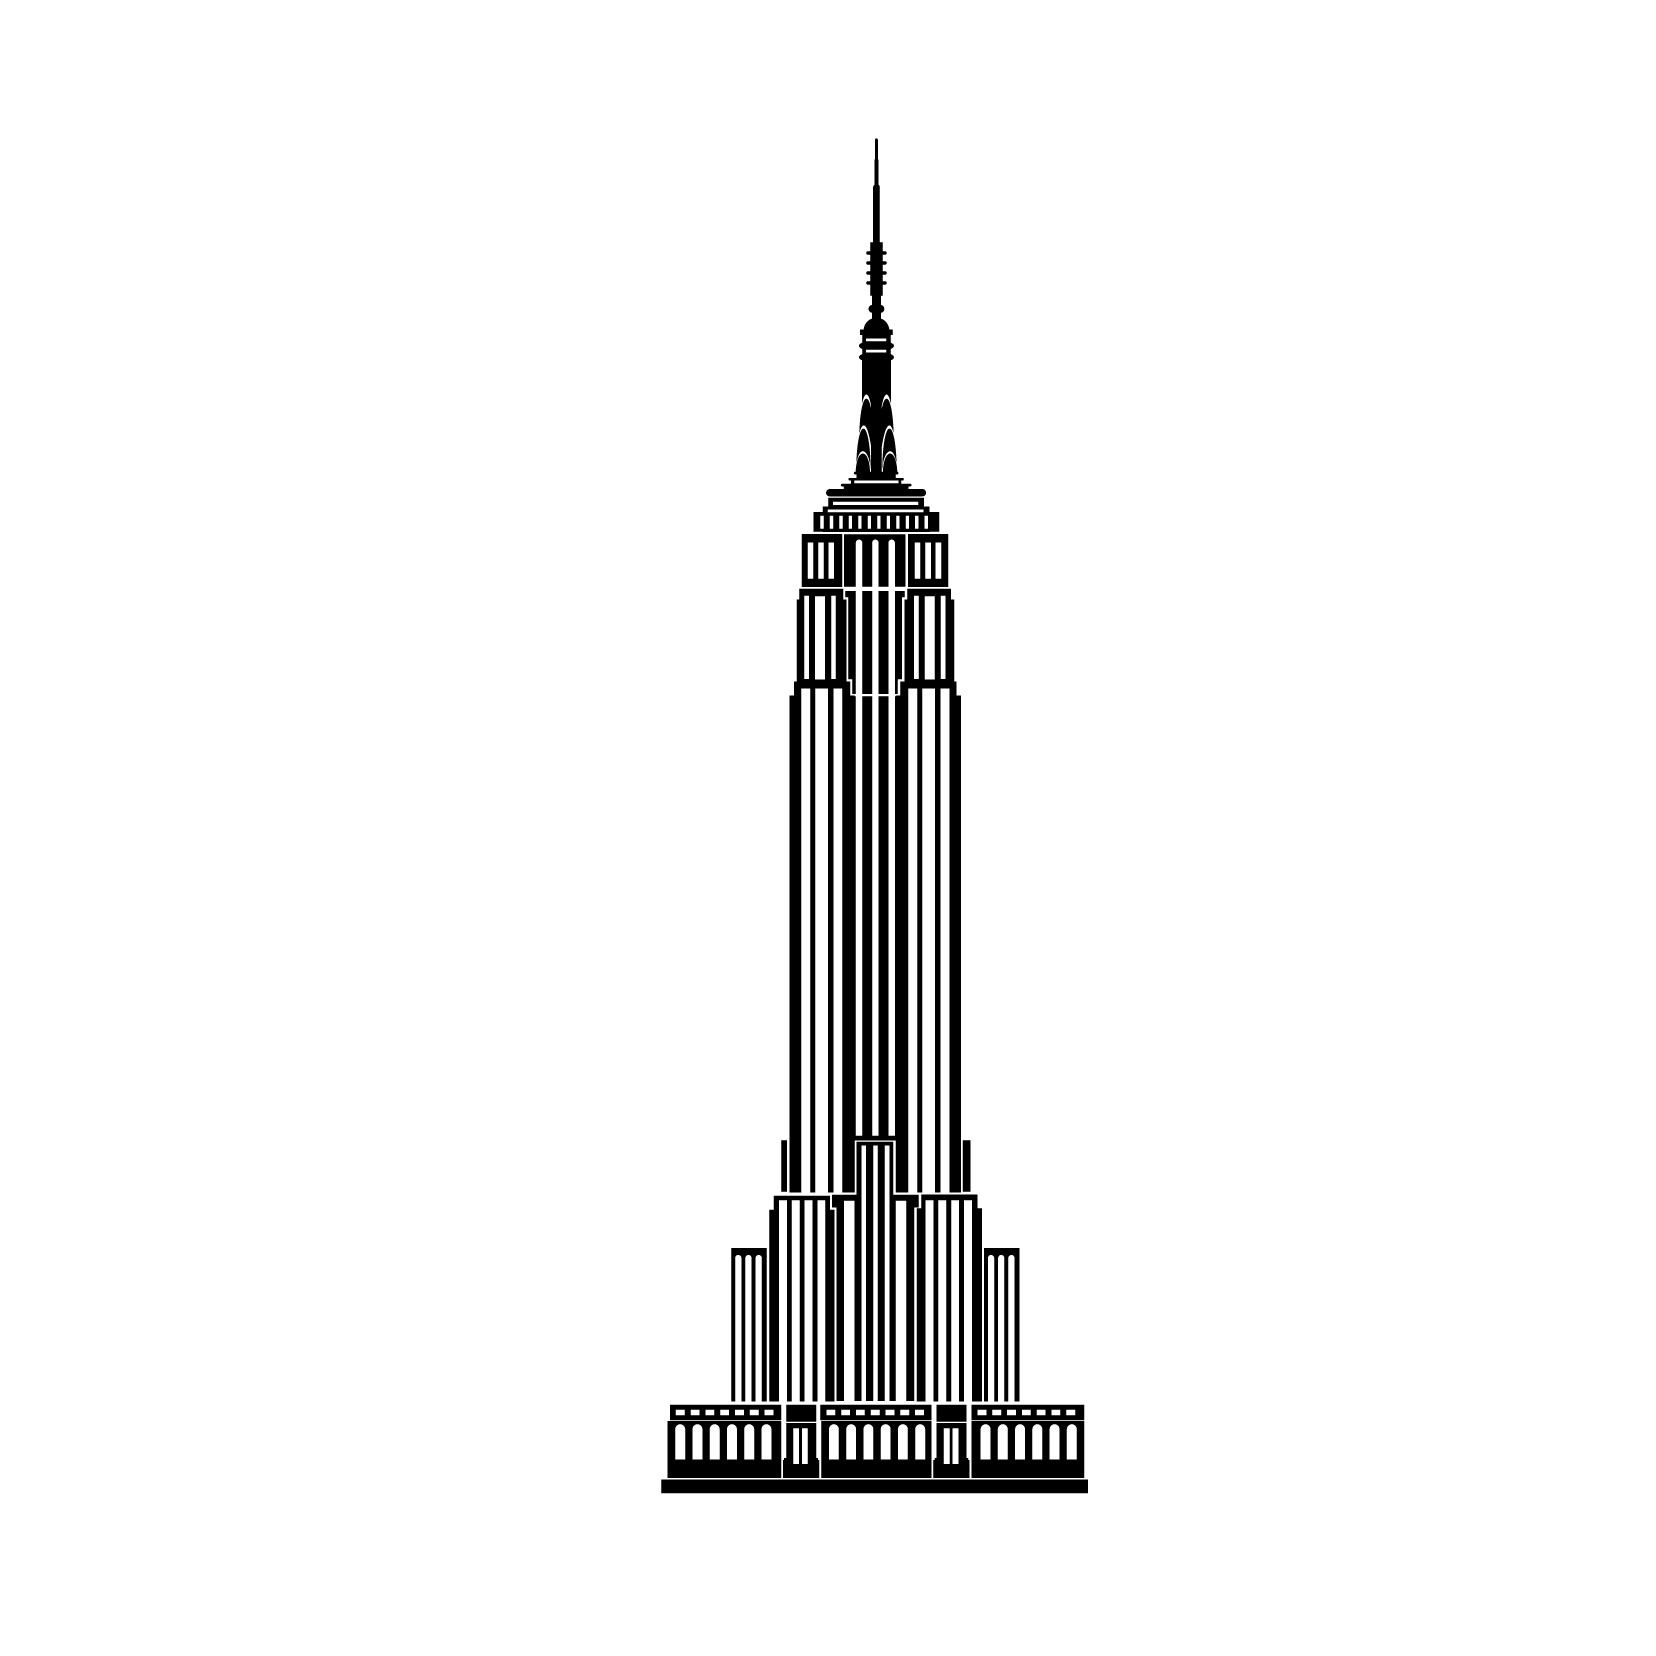 The Structure Of The Empire State Building